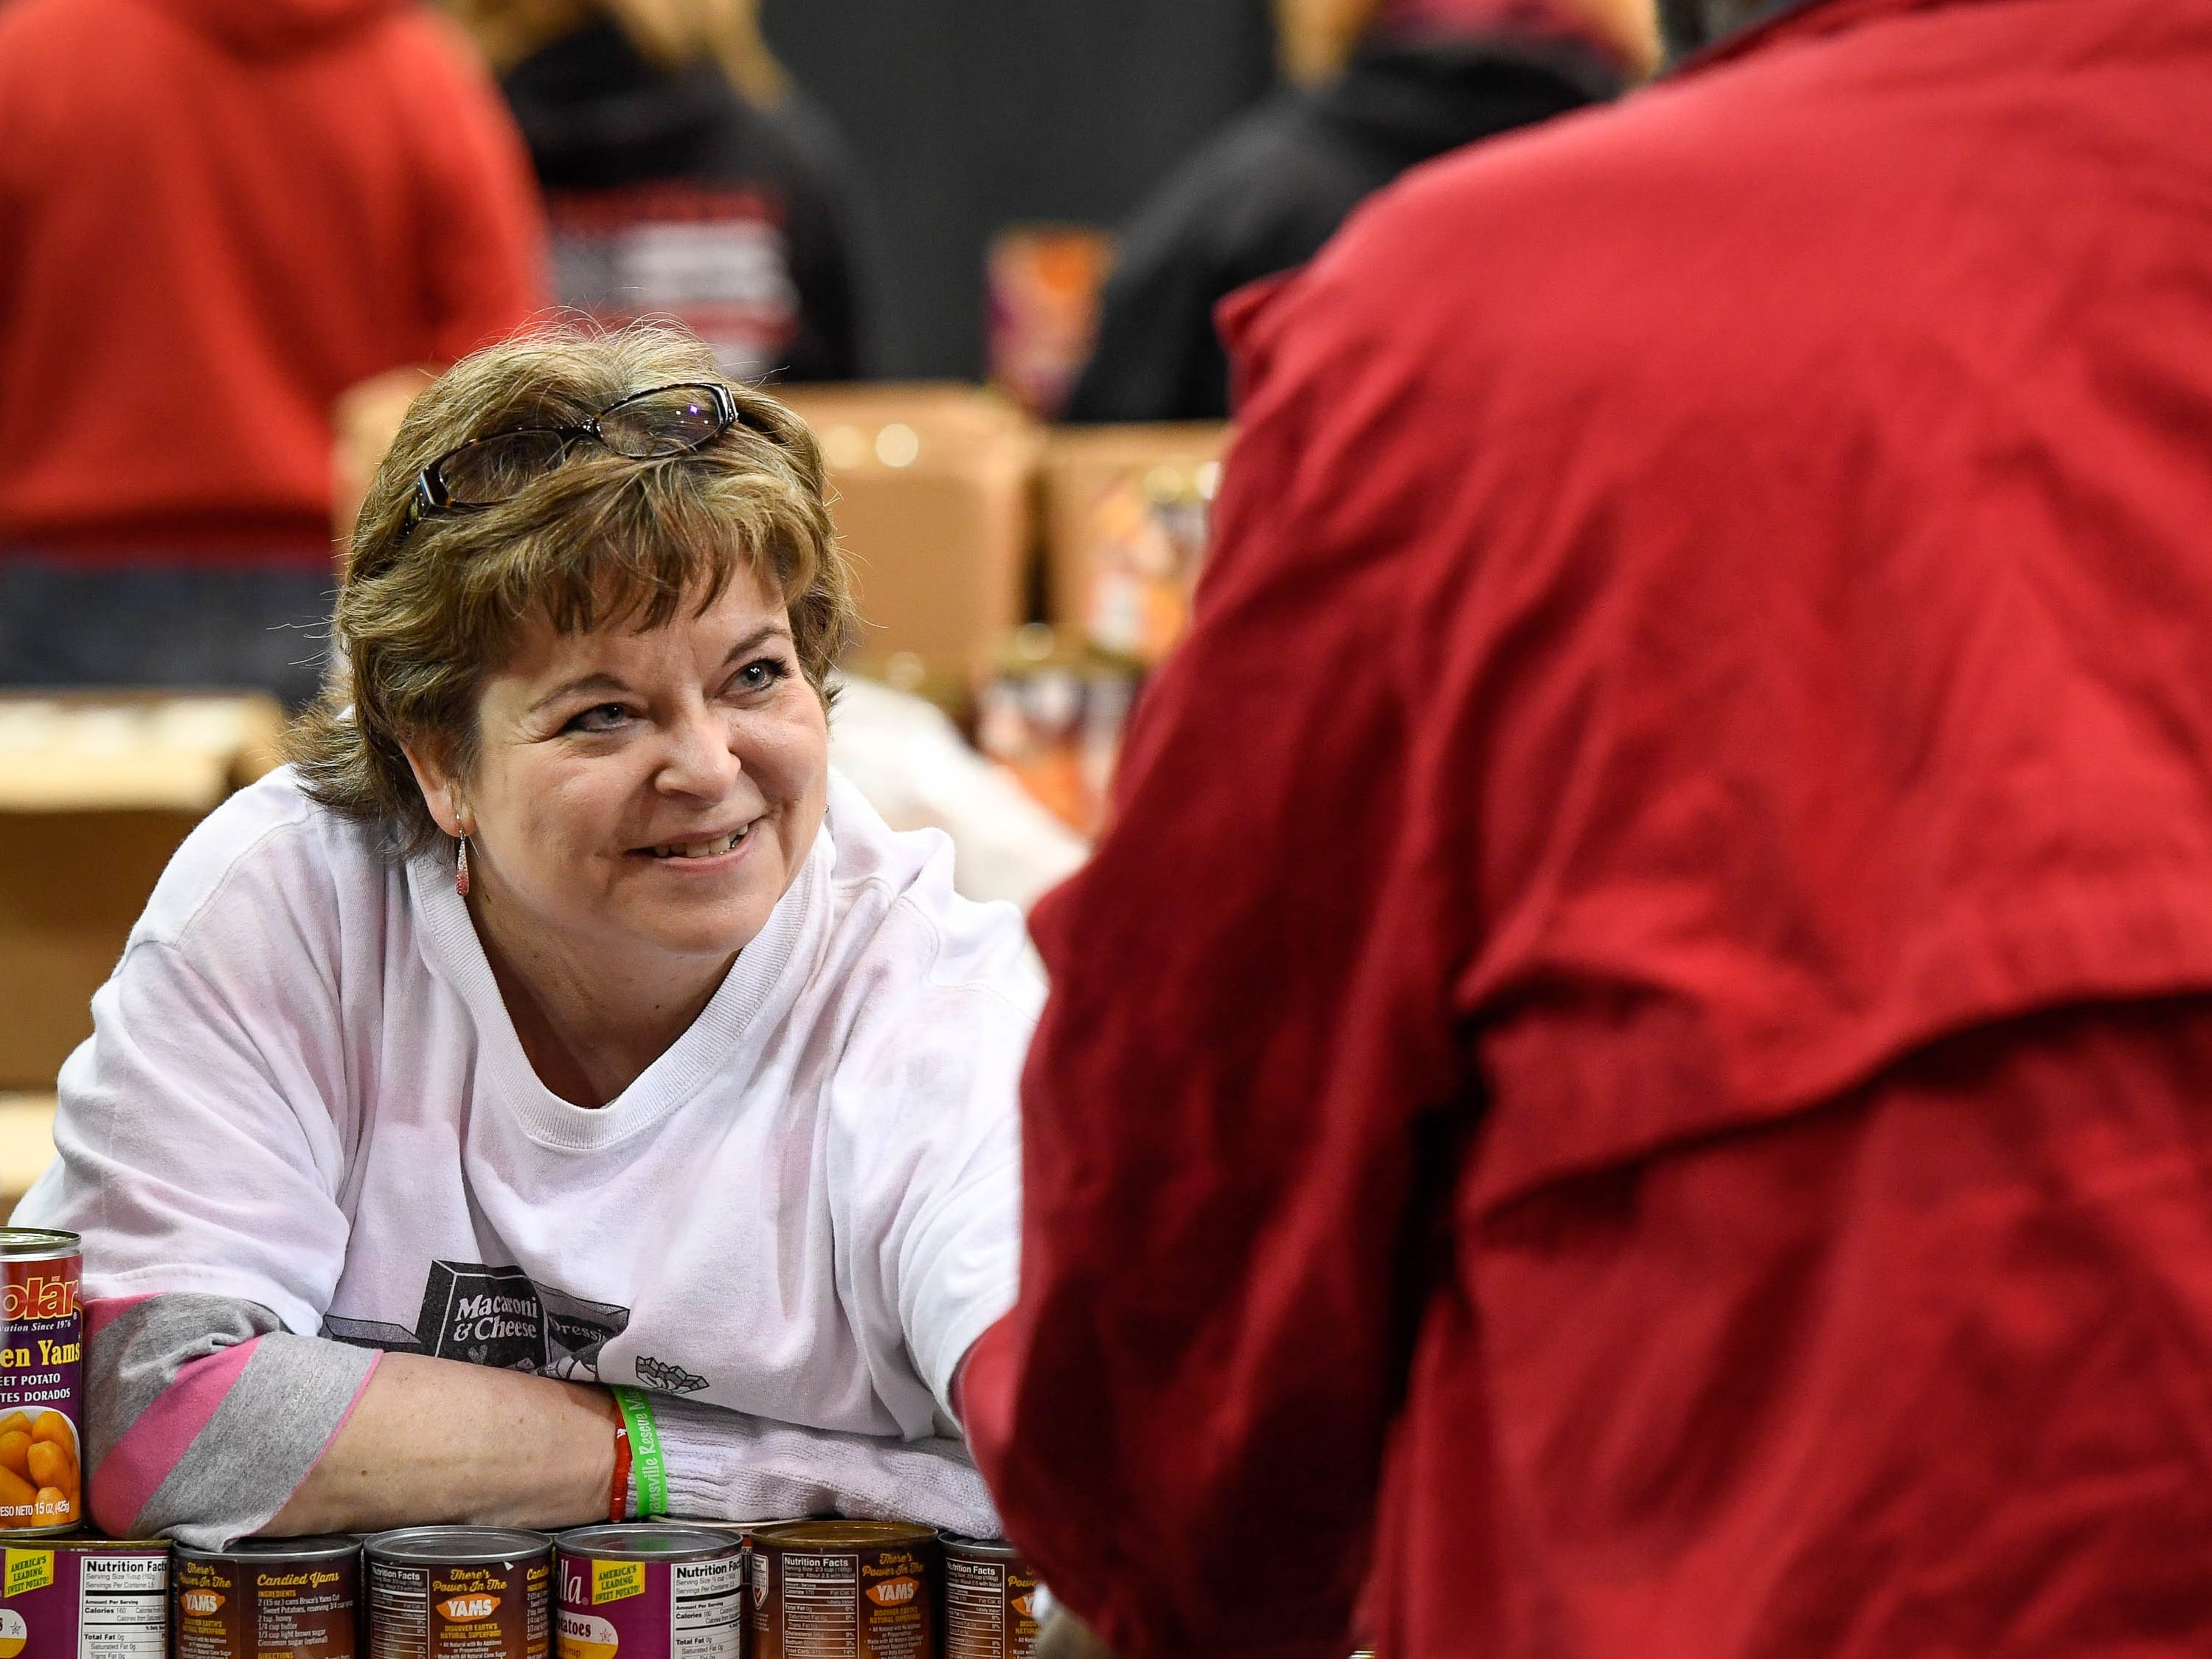 Volunteer Angie Ezell shakes hands with people passing through the food box line at the Evansville Rescue Mission's 96th annual Gobbler Gathering held at the Old National Events Plaza Tuesday, November 20, 2018.